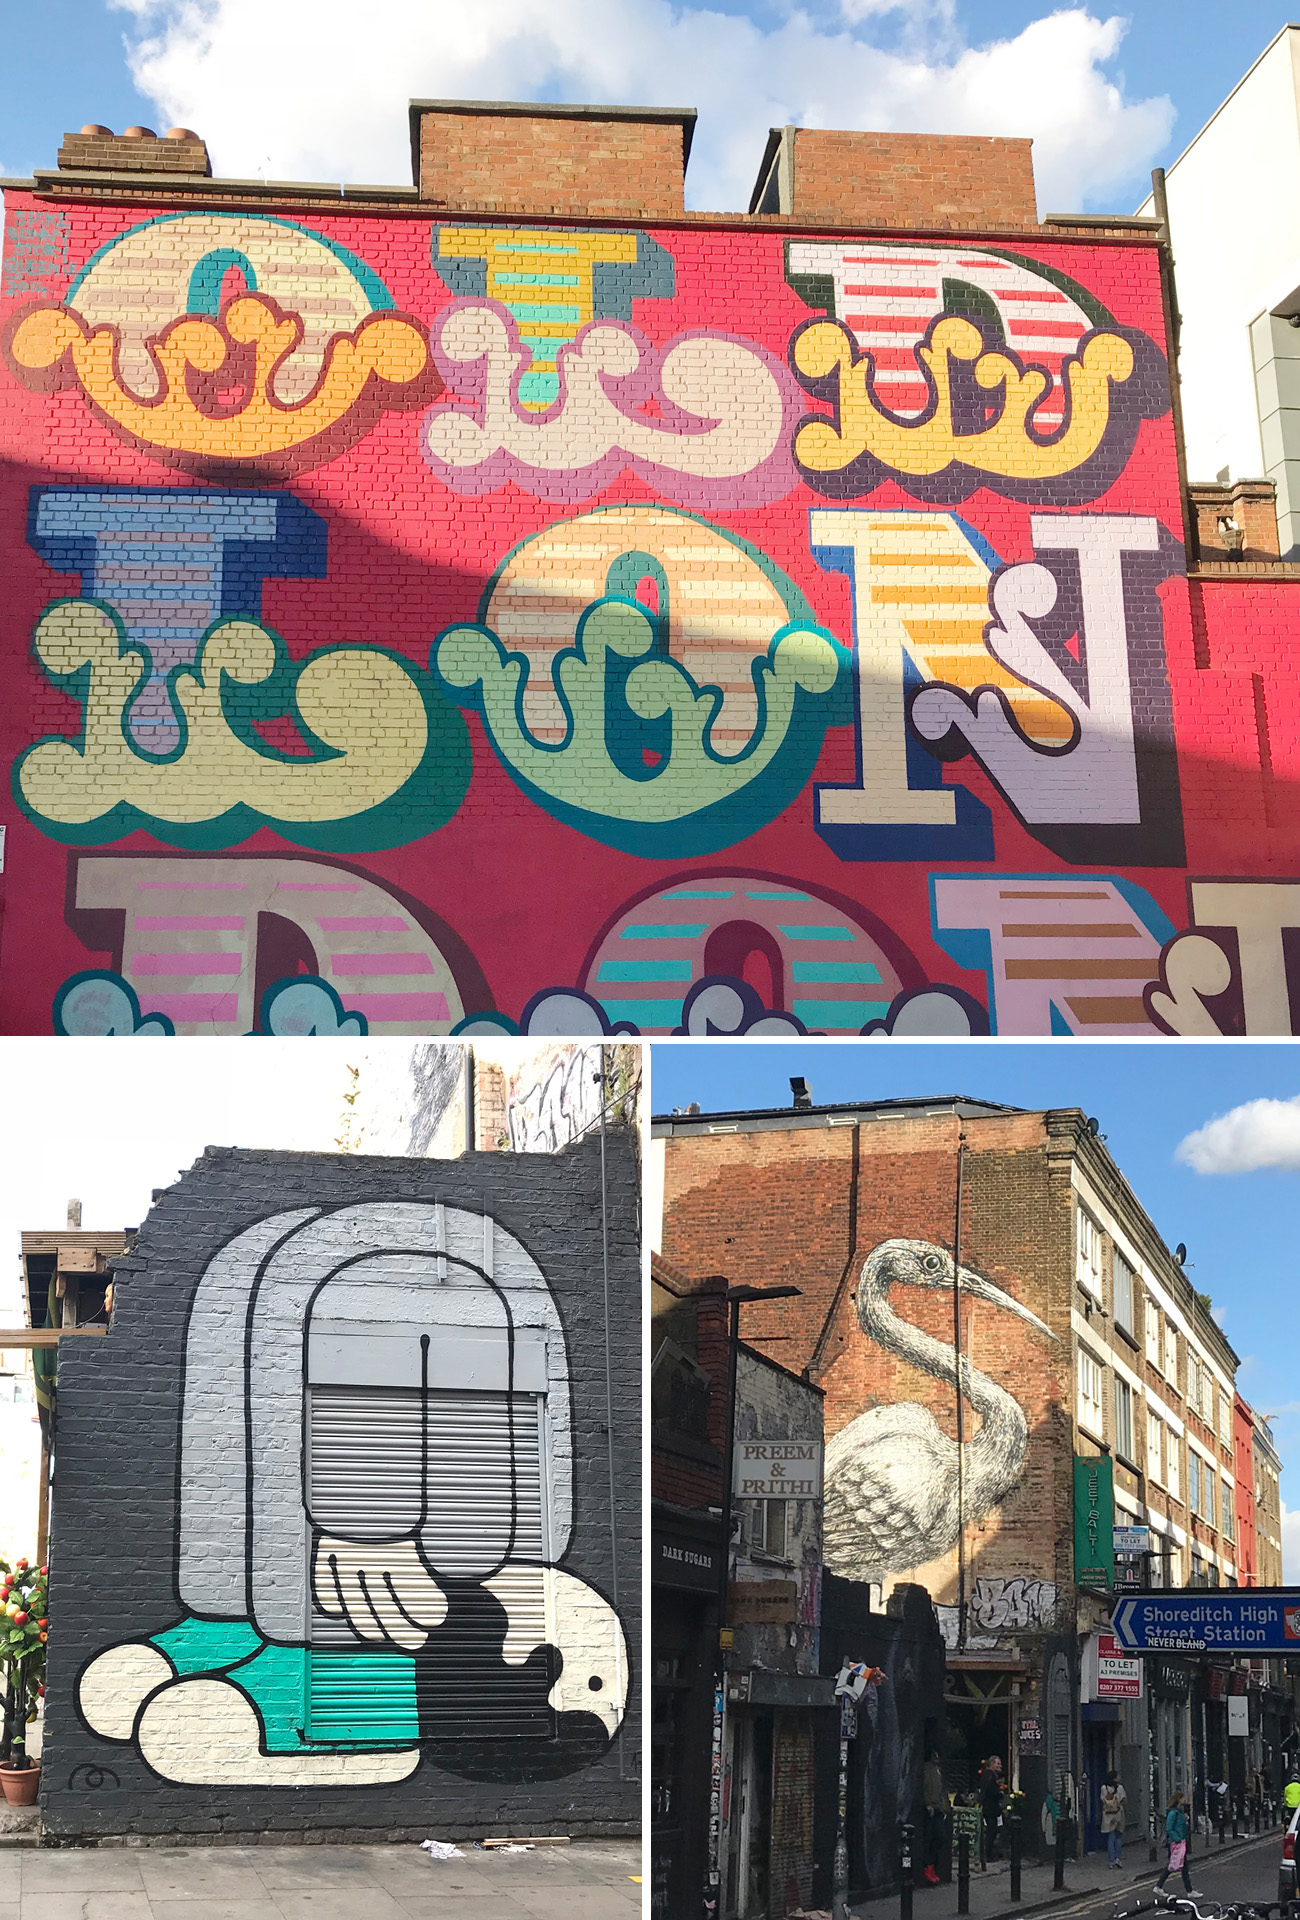 Shoreditch London Graffiti